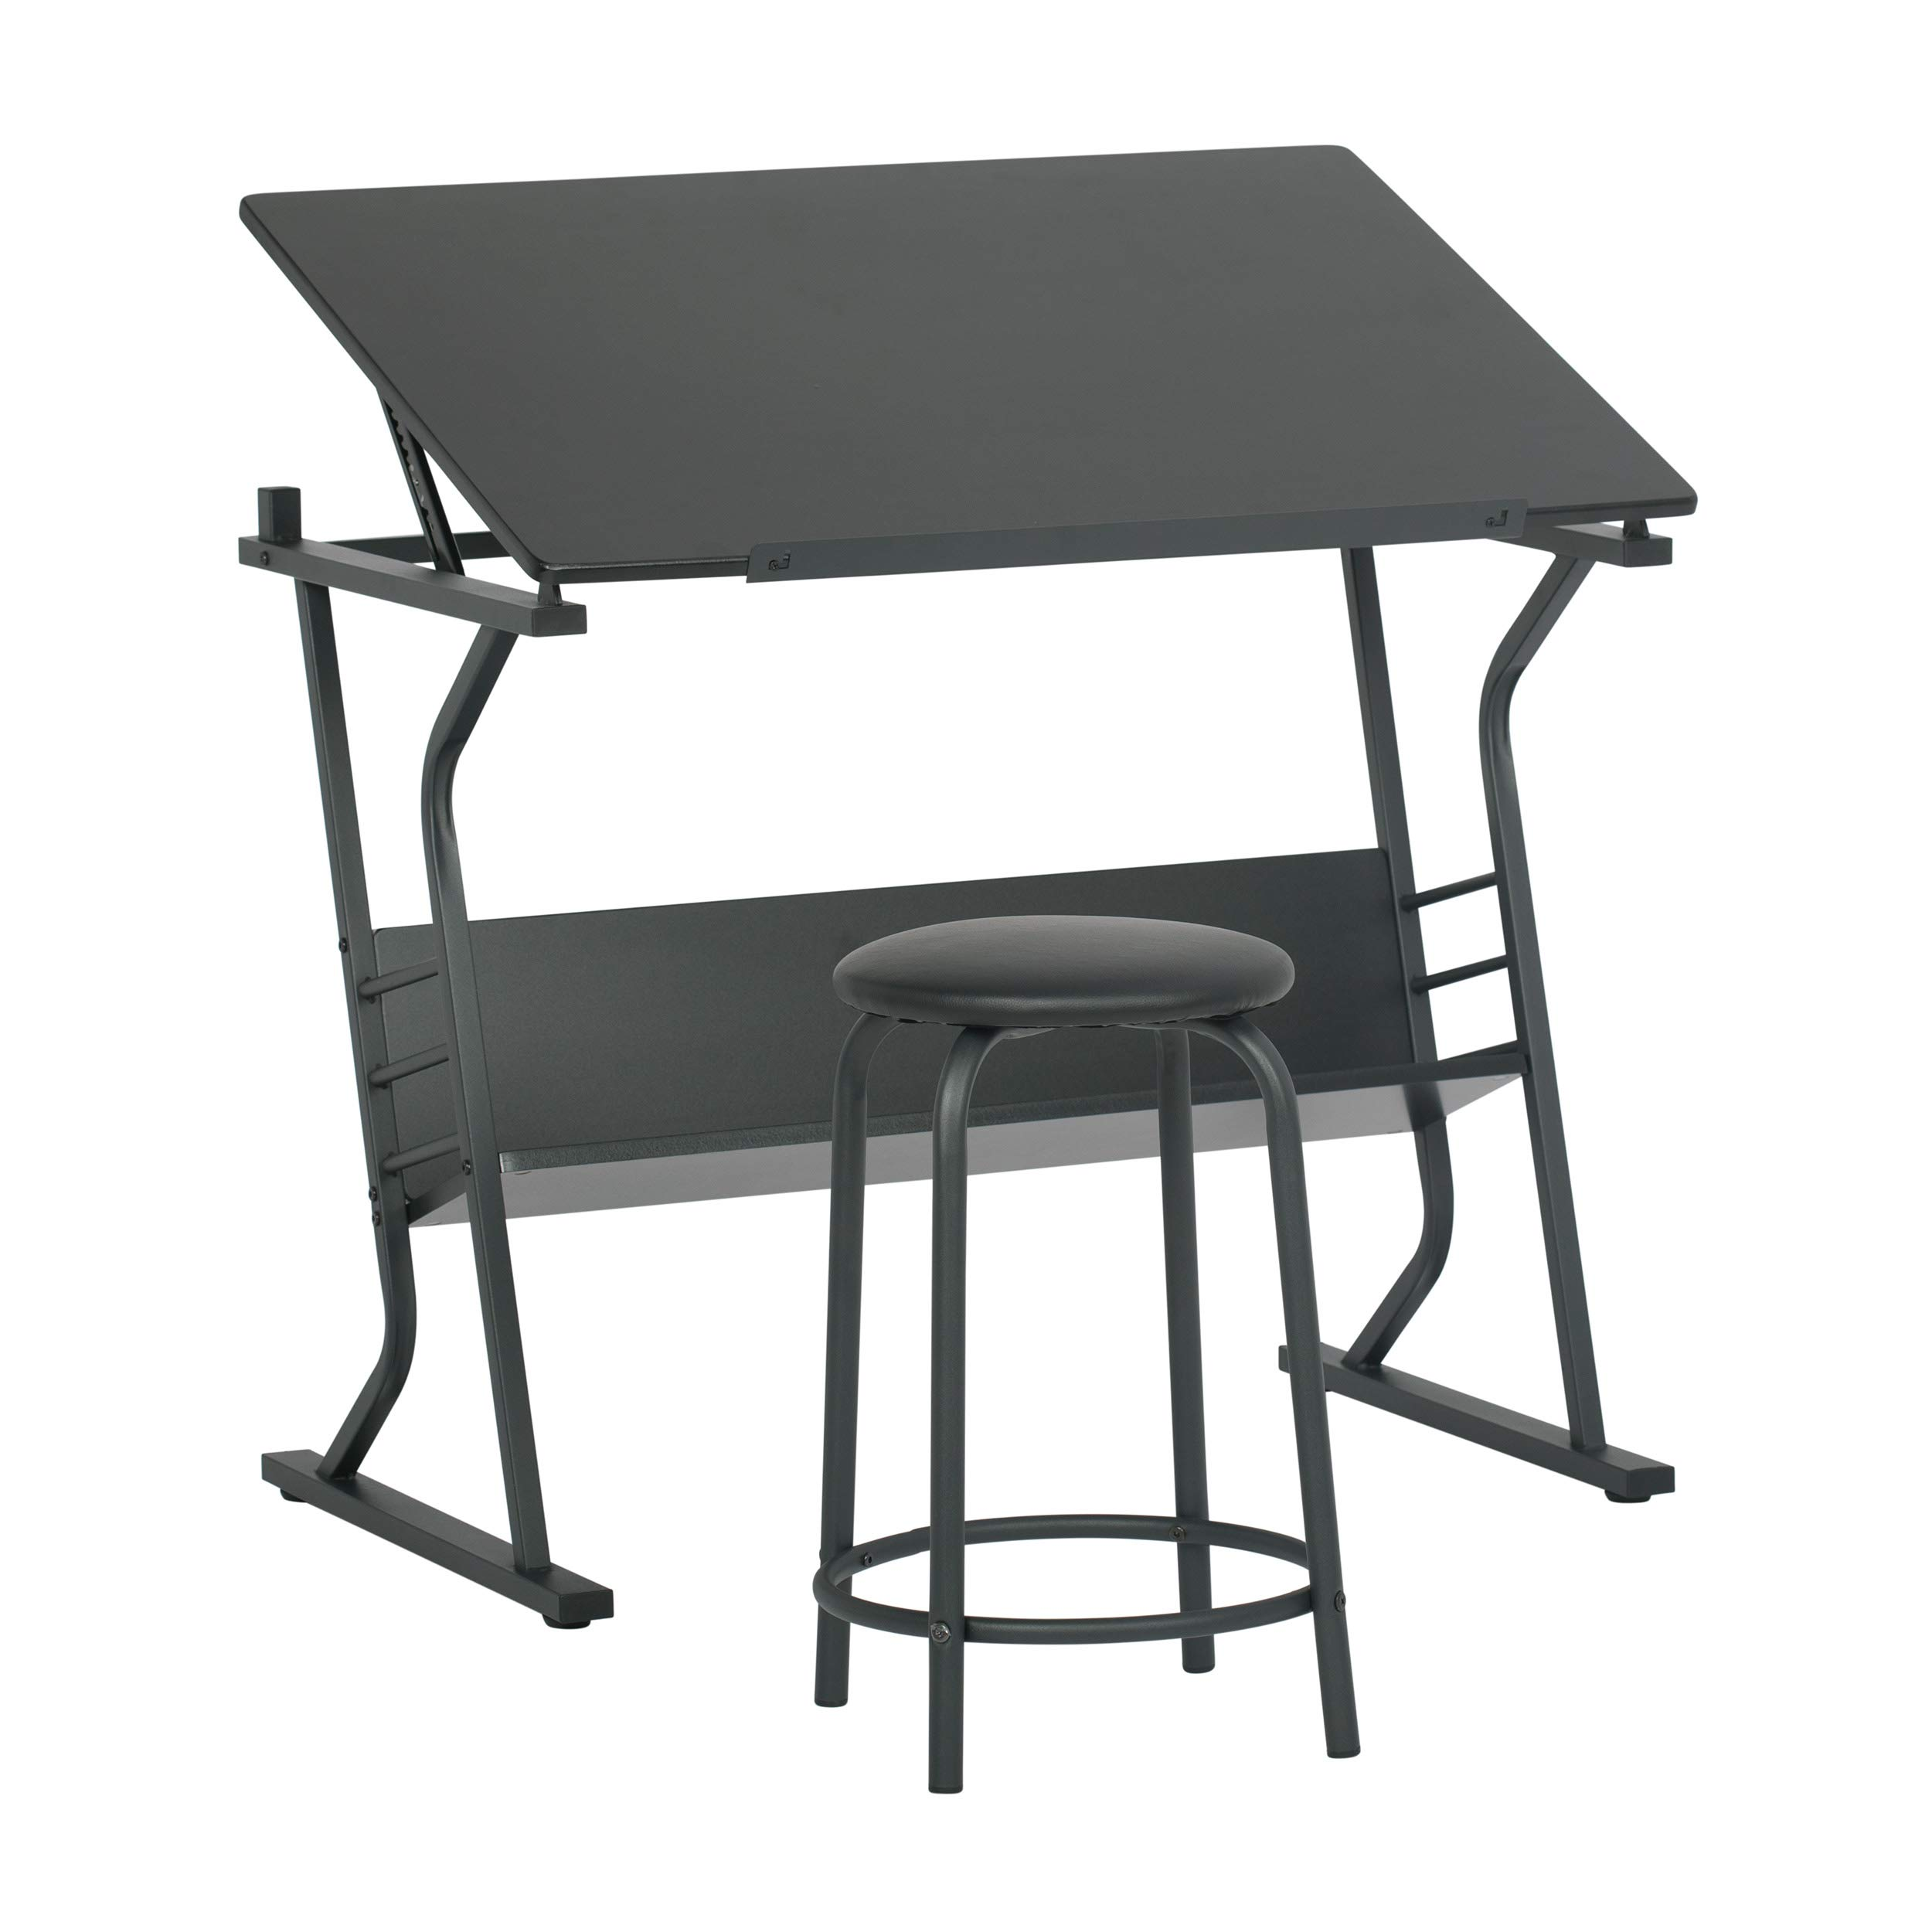 STUDIO DESIGNS Eclipse Table with Stool in  Black 13366 by SD Studio Designs